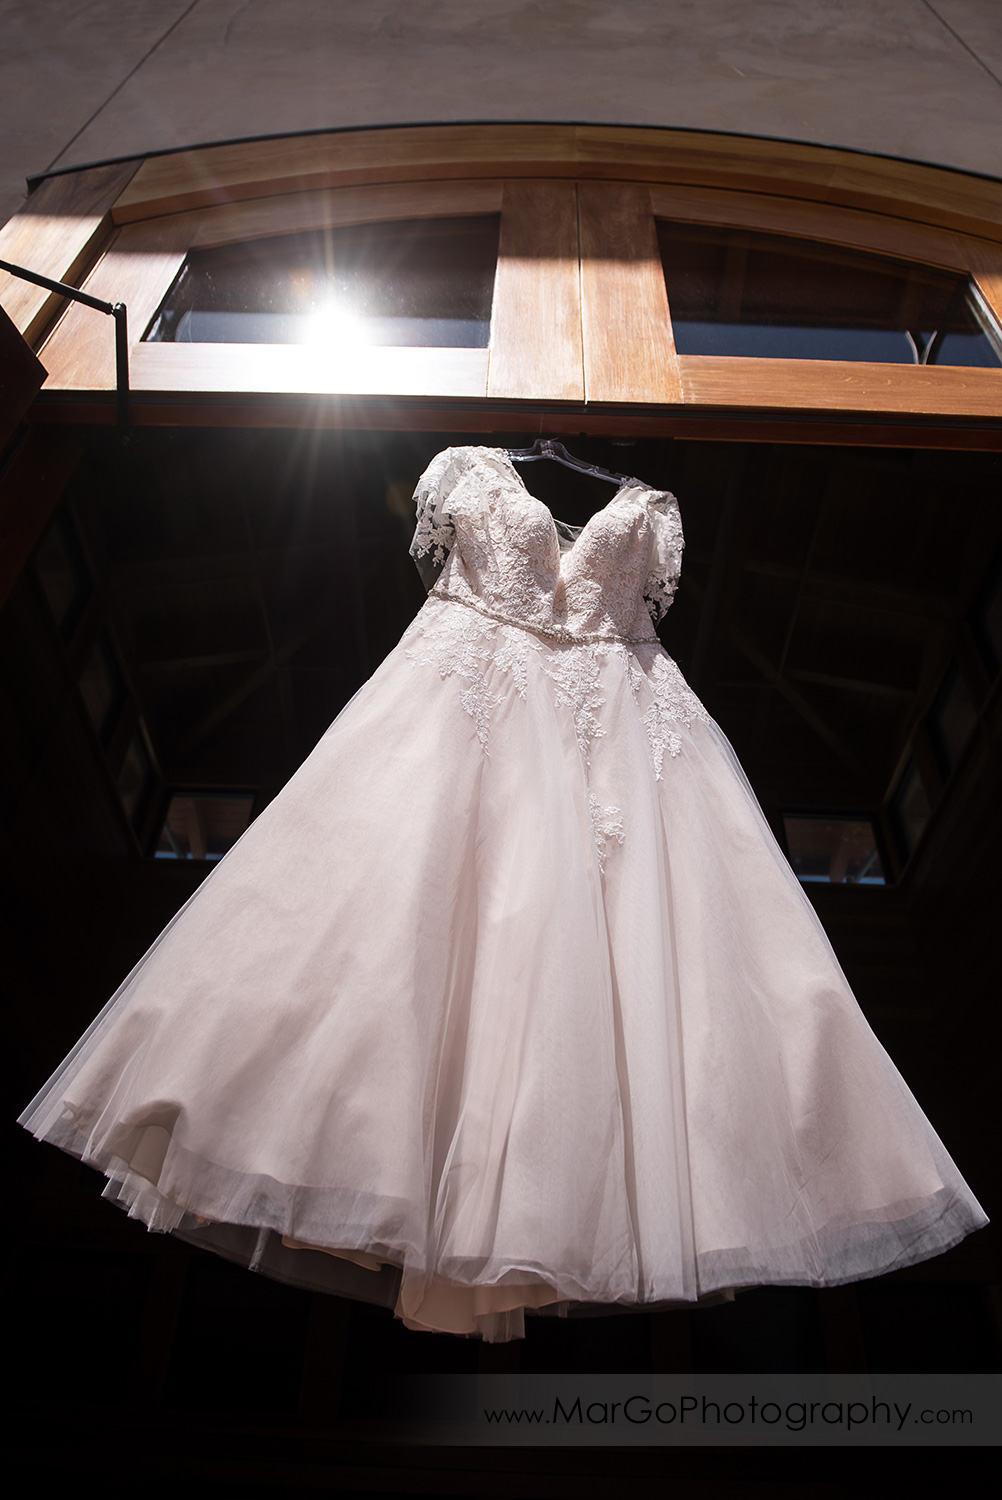 wedding dress hanging in the doorway at Livermore Garre Vineyard and Winery